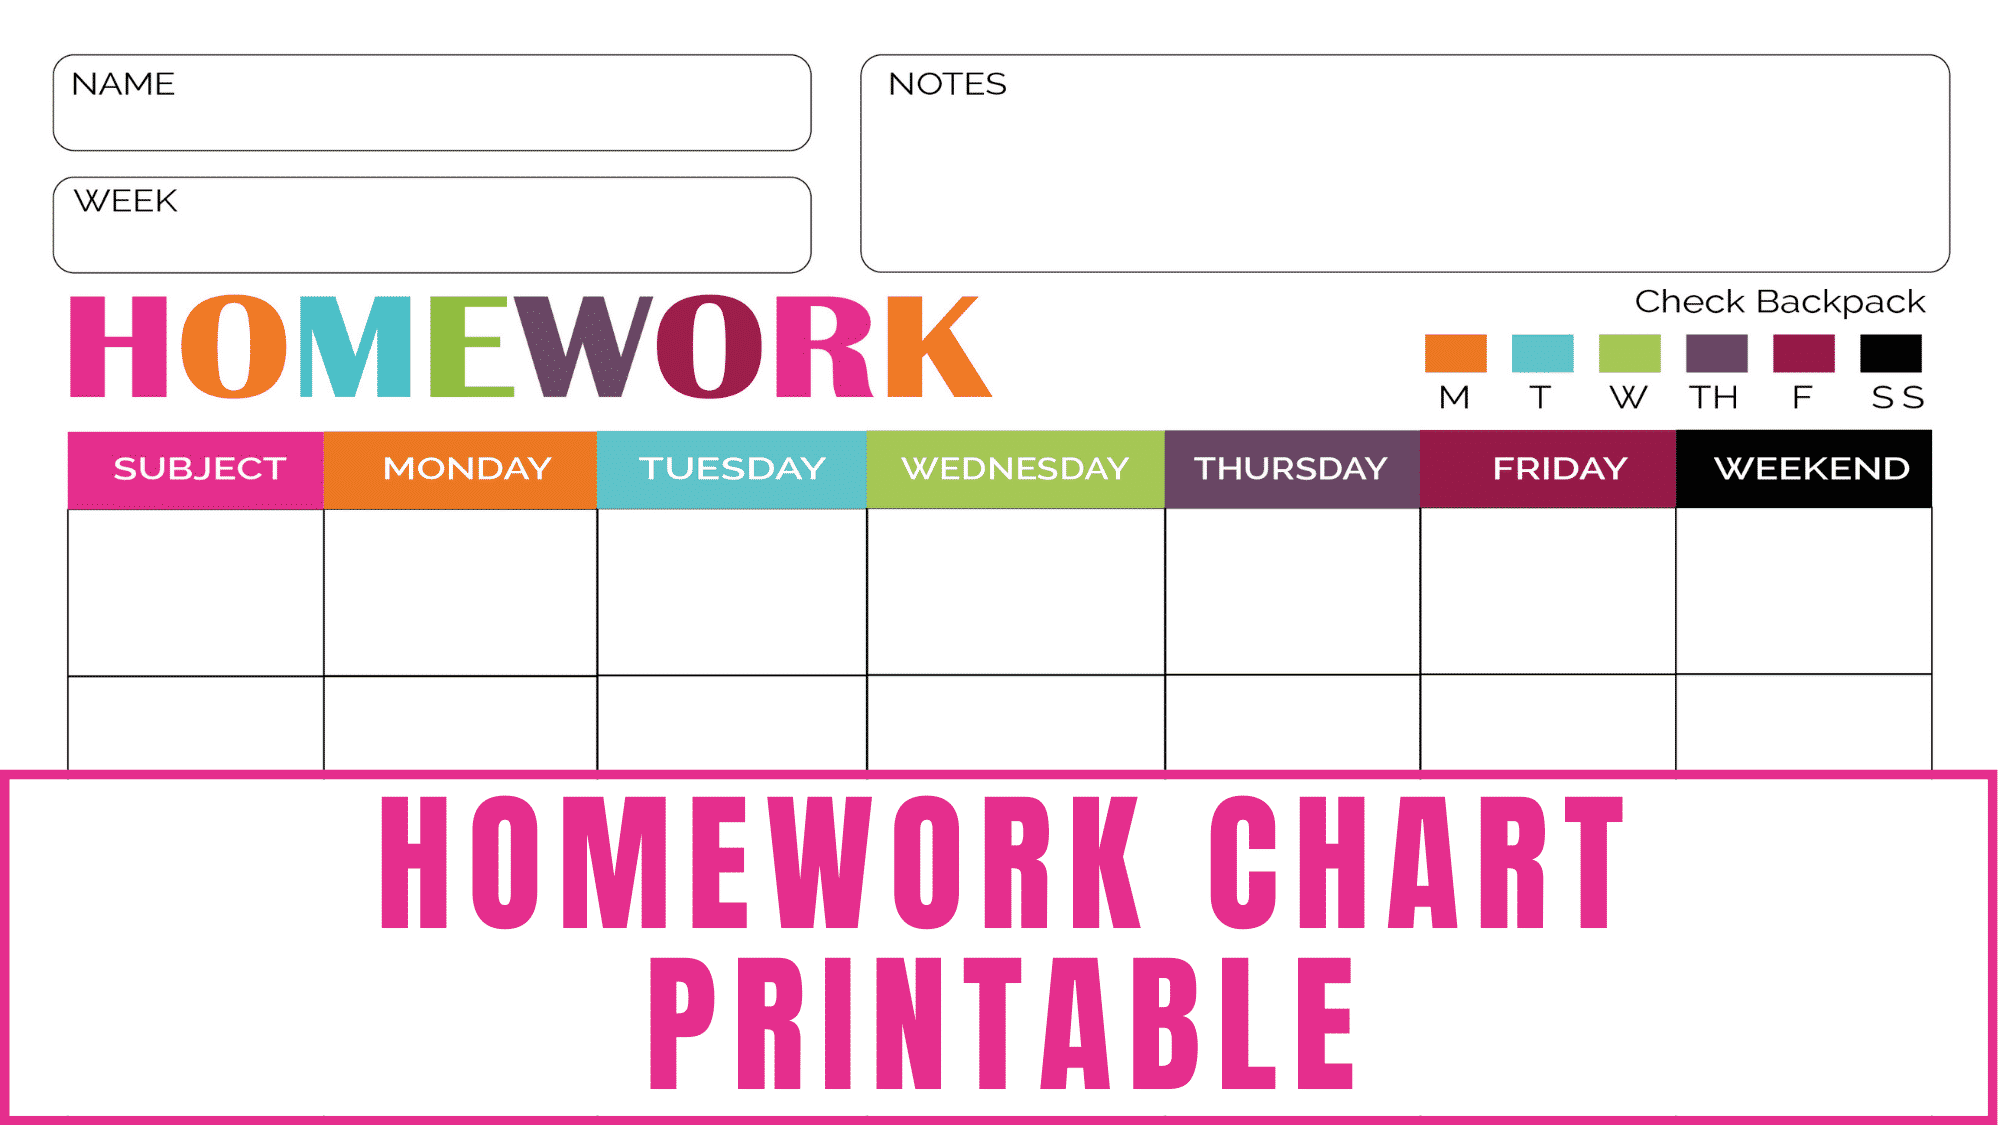 Whether you have a conscientious student or a student who often forgets their homework, this homework chart printable will come in handy.